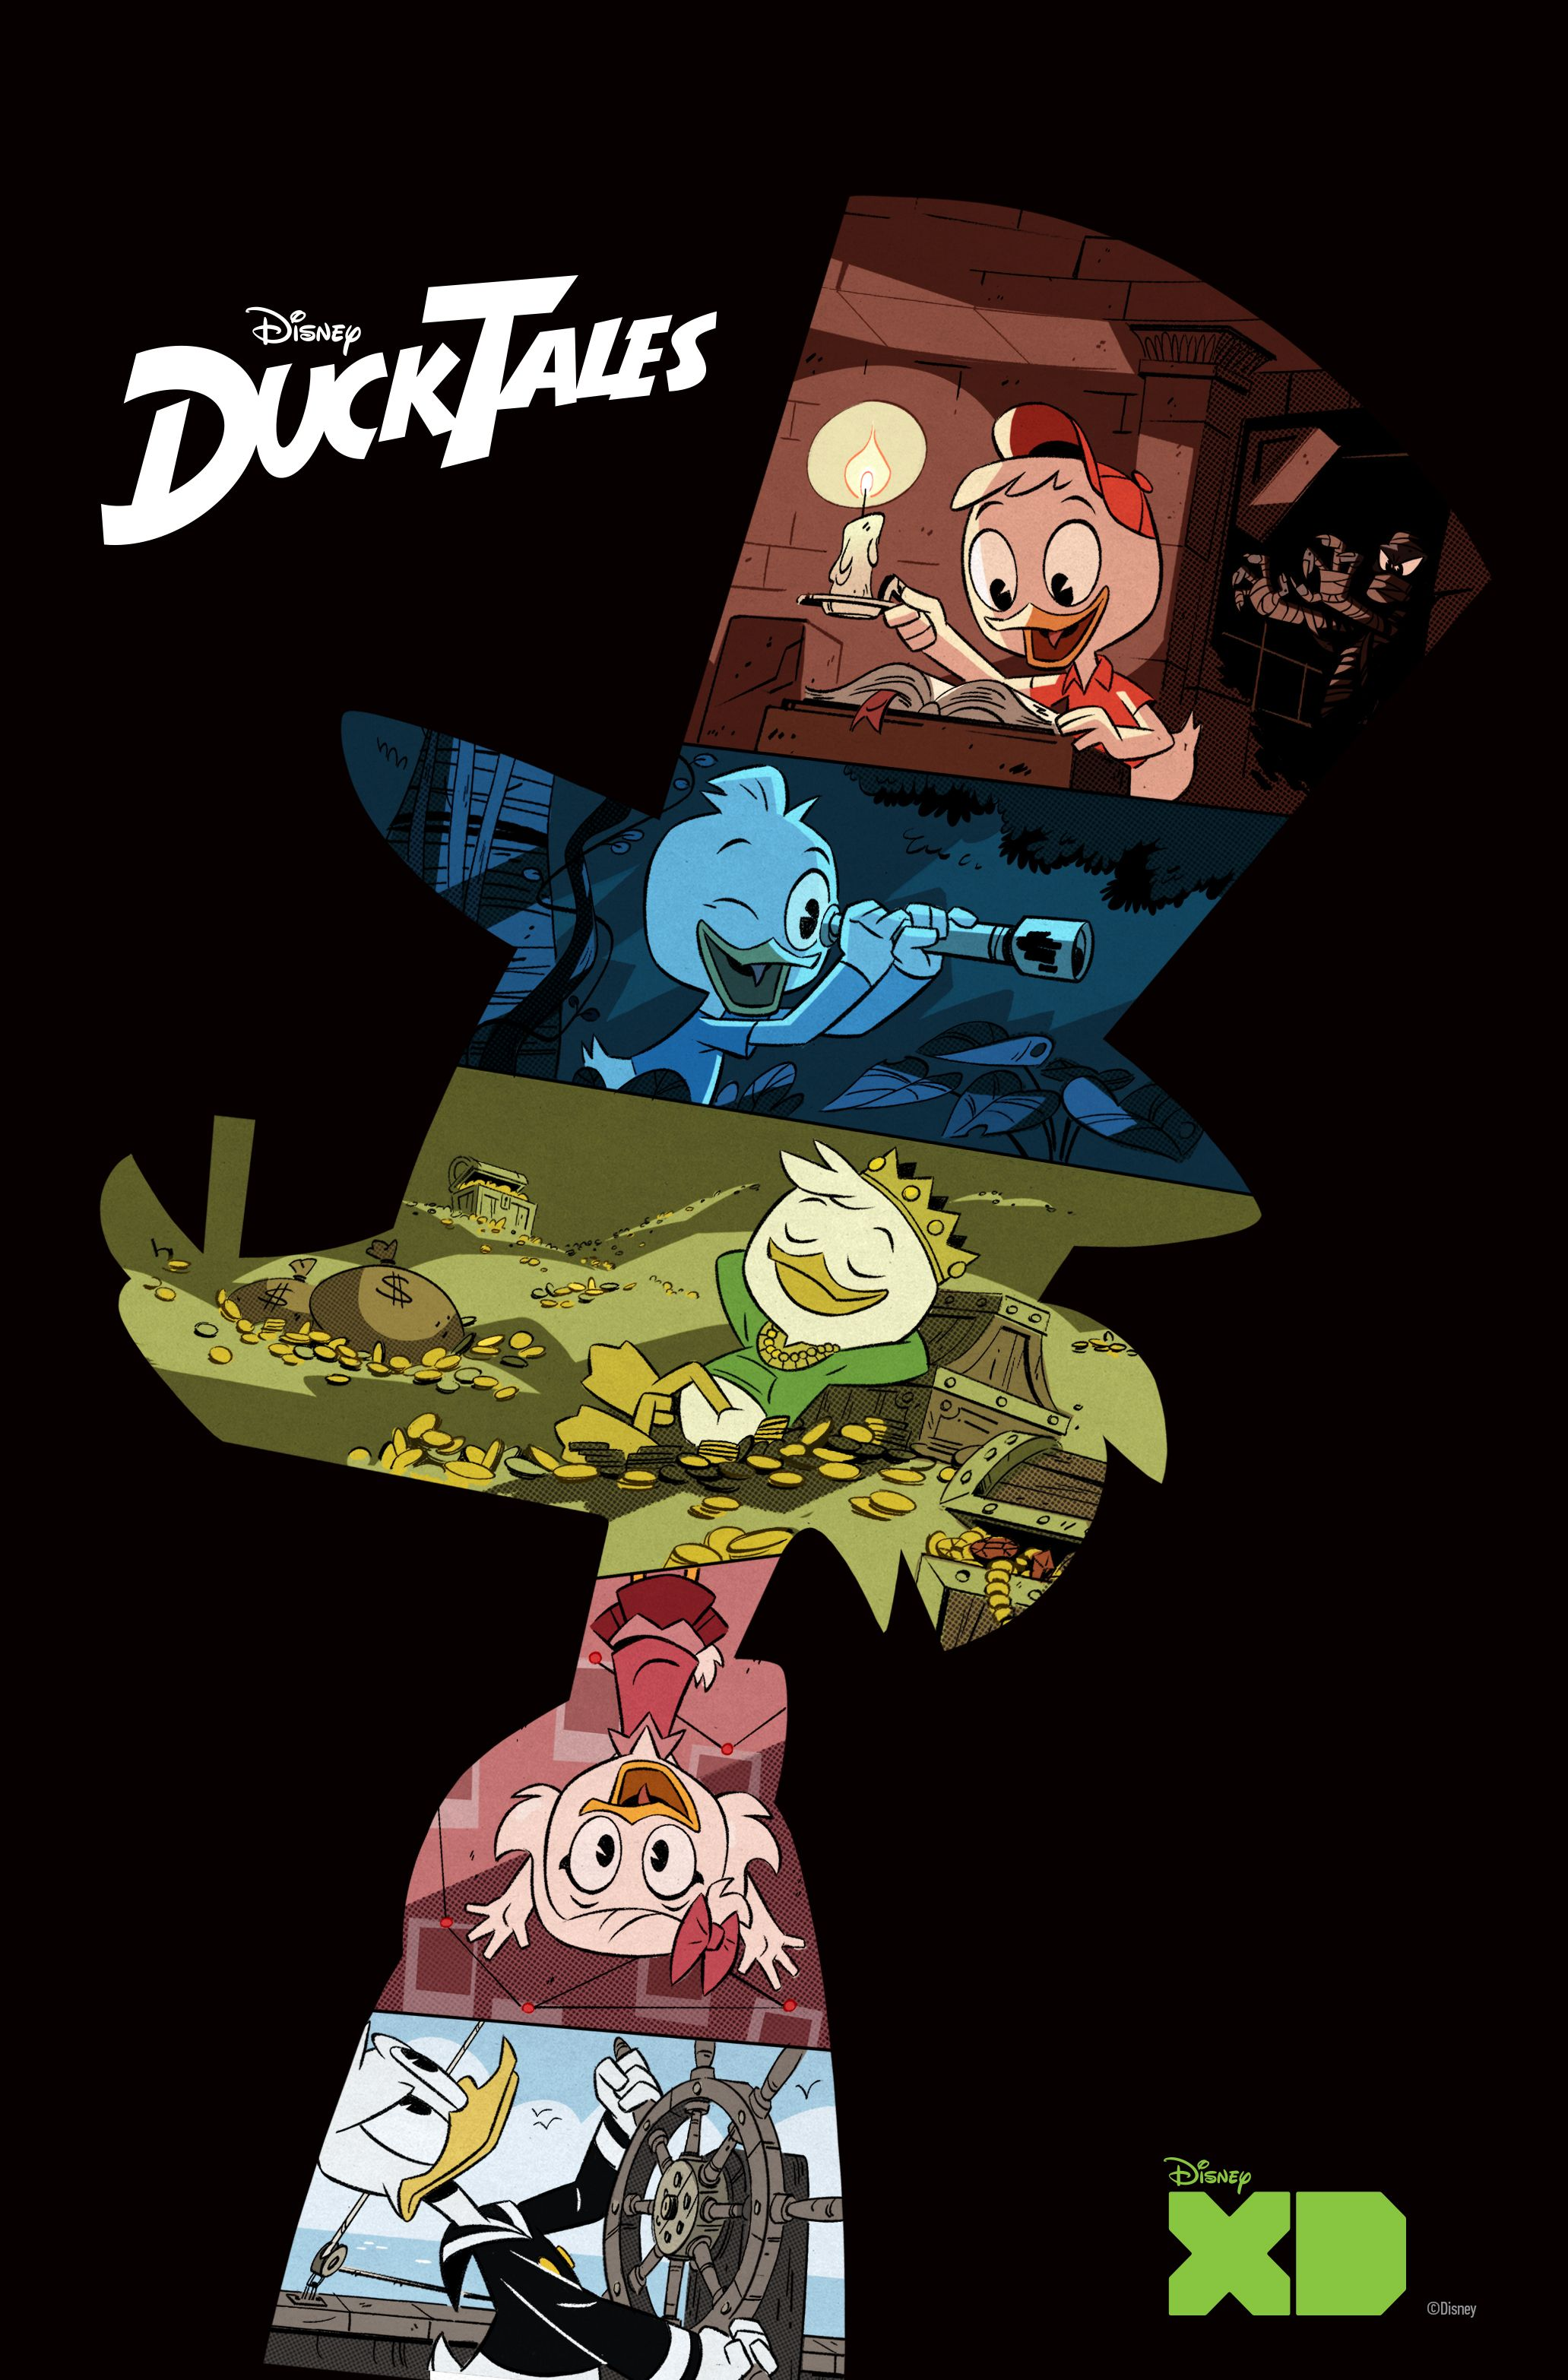 This New DuckTales Teaser Image Makes the 2017 Debut Feel Way Too Far Away   Oh My Disney